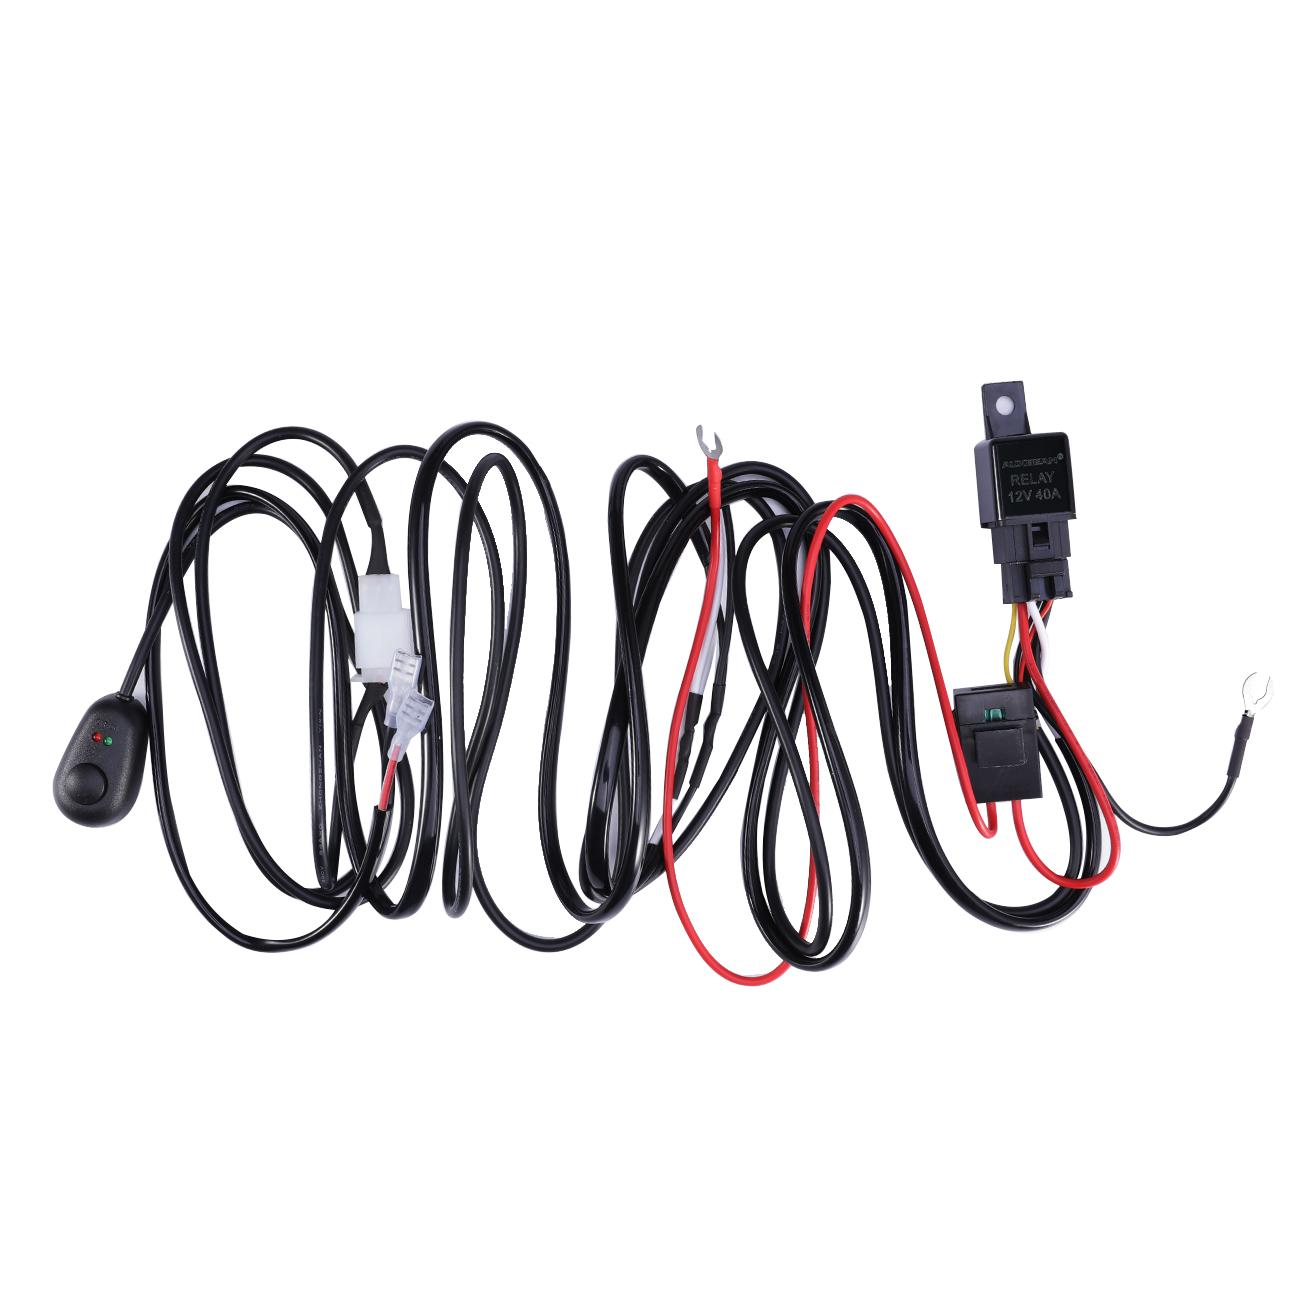 led hid work driving light bar wiring kit harness loom